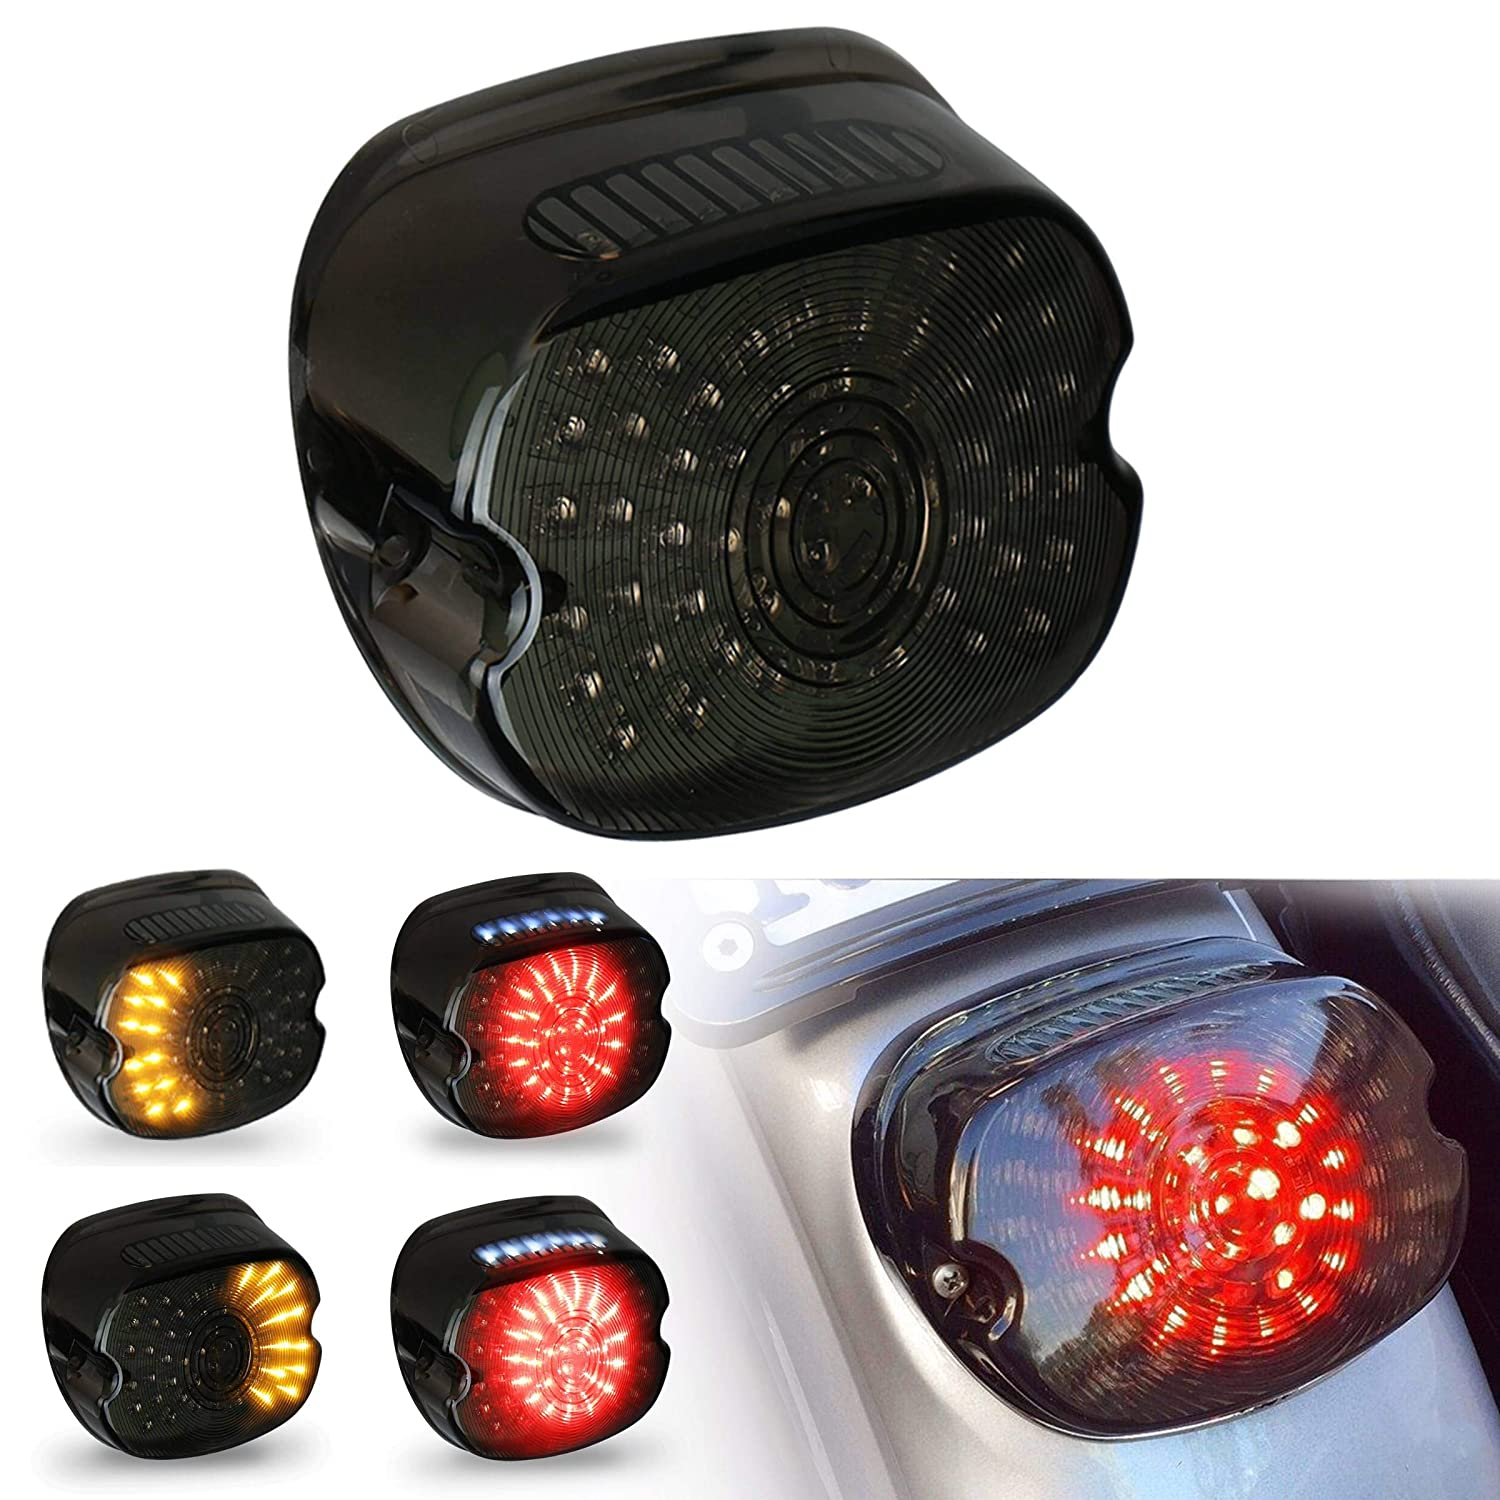 Smoked Harley Tail Light LED Rear Driving Braking Turn Signal Light for  1200 Sportster 883 Dyna Road King Electra Glides FLHTC